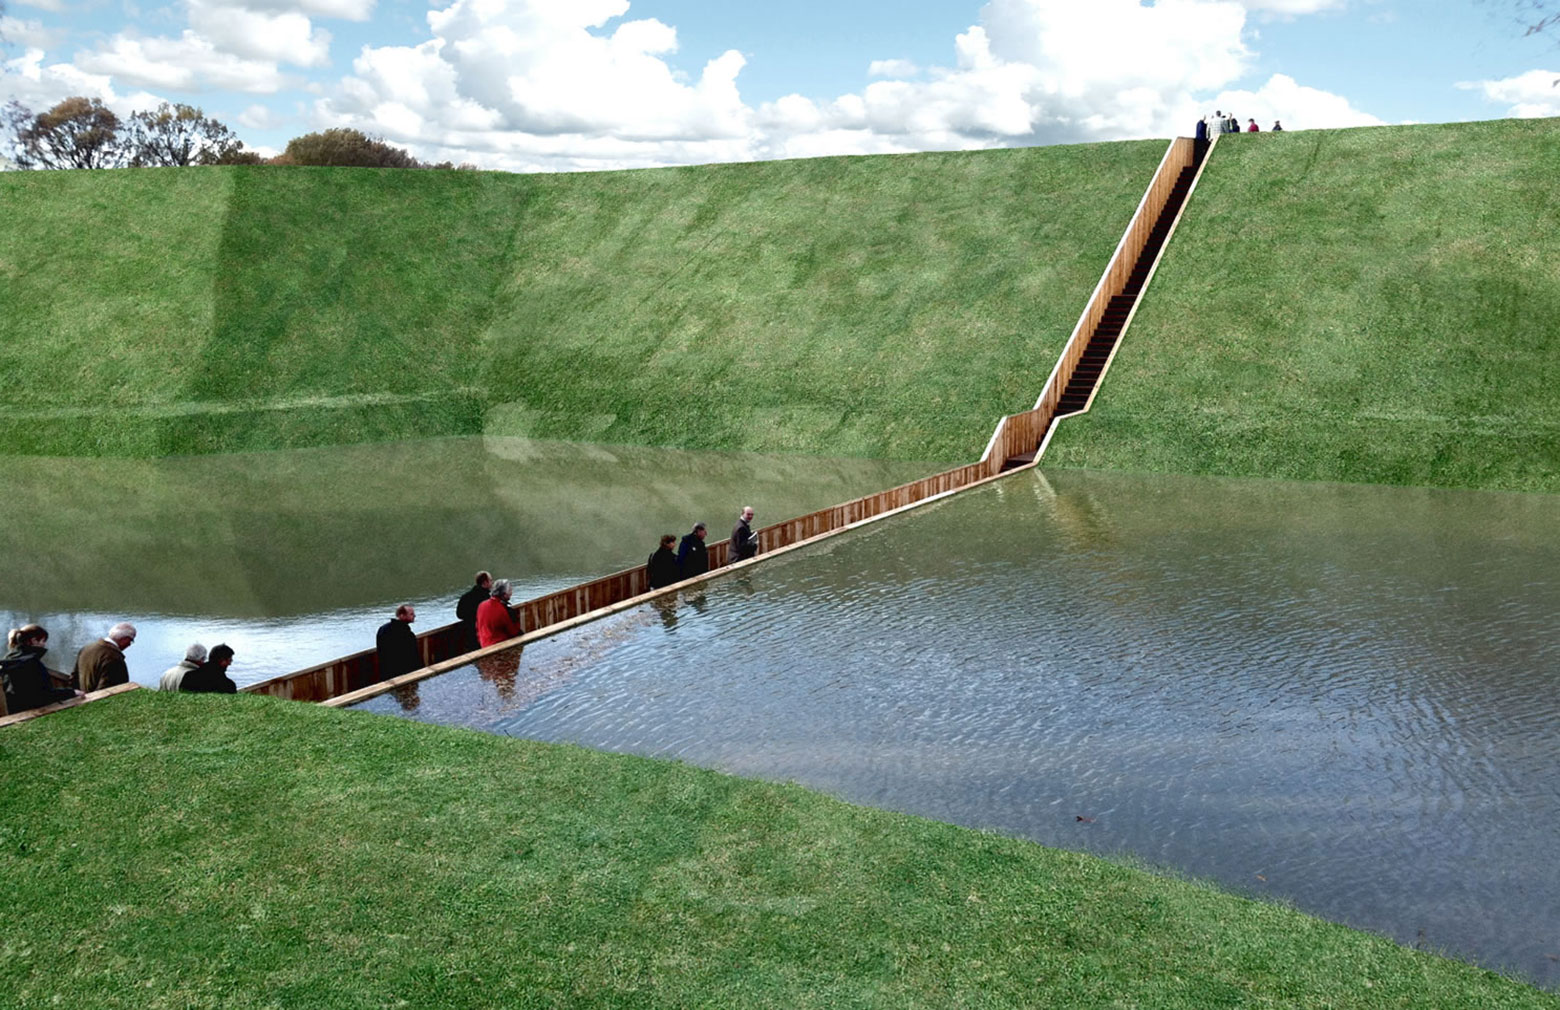 Sunken Bridge (Moses Bridge), Halstern, Netherlands, designed by RO & AD